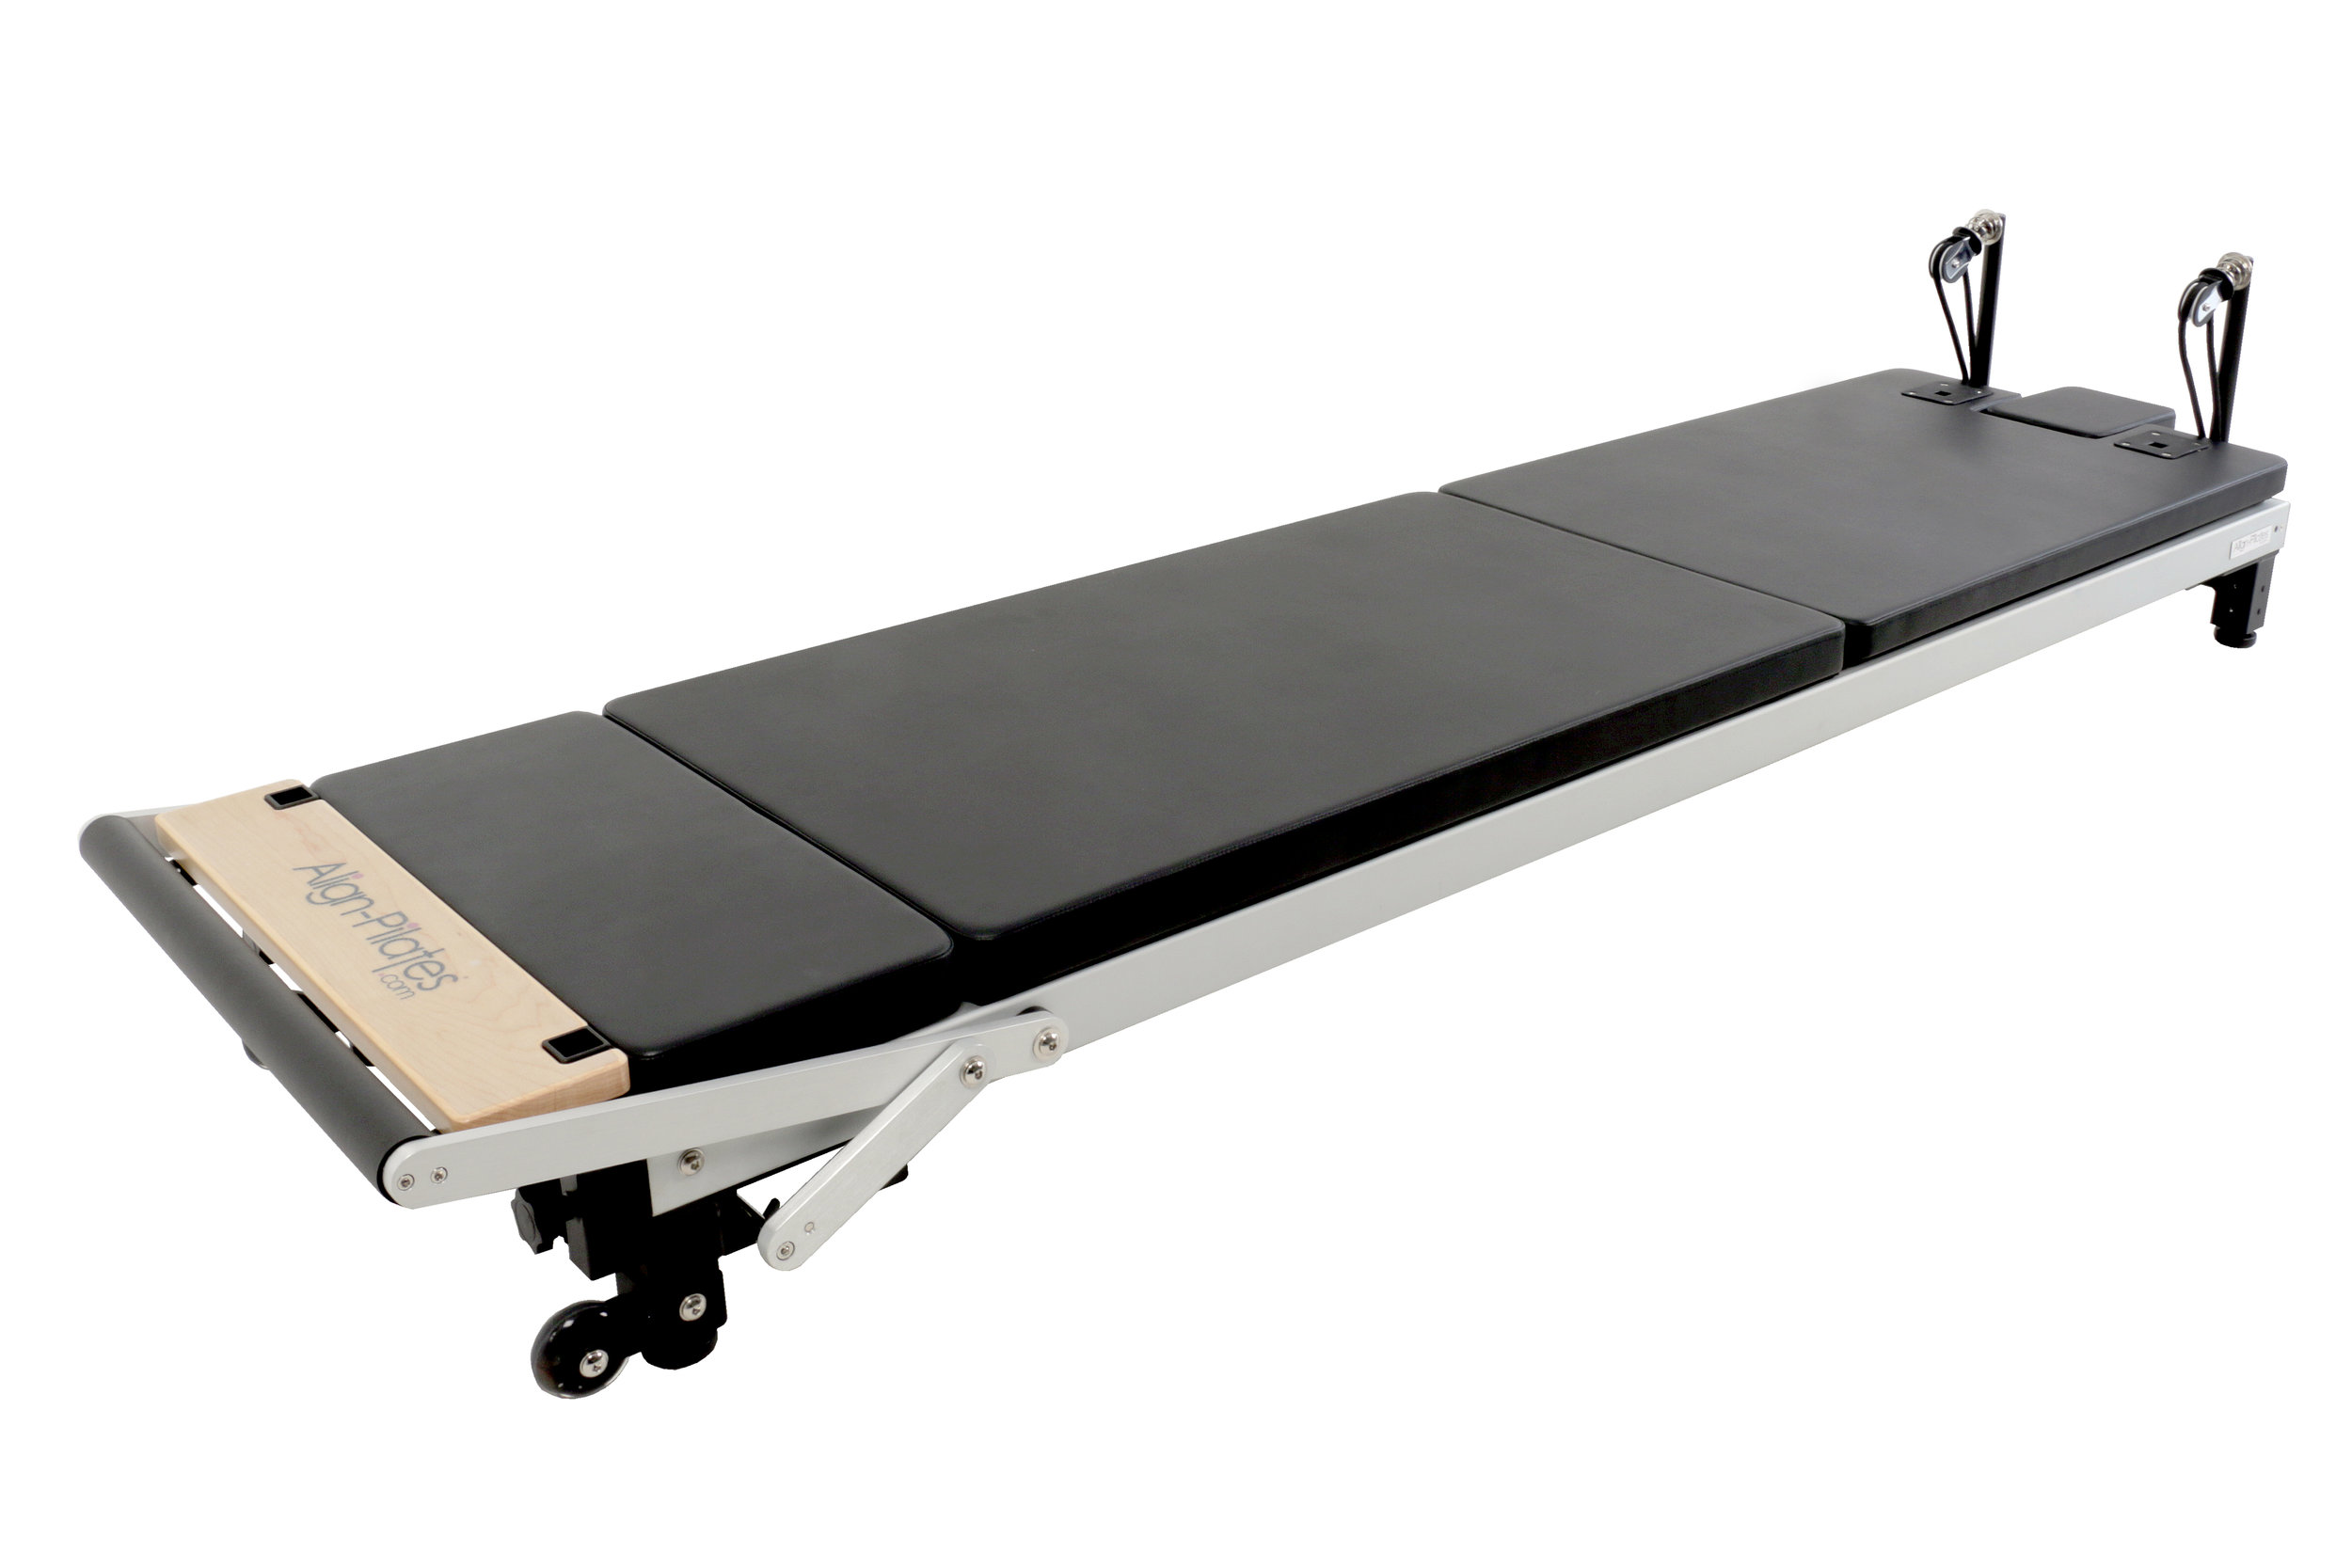 Align C2 Pro Pilates Reformer with Mattress and Platform extensions